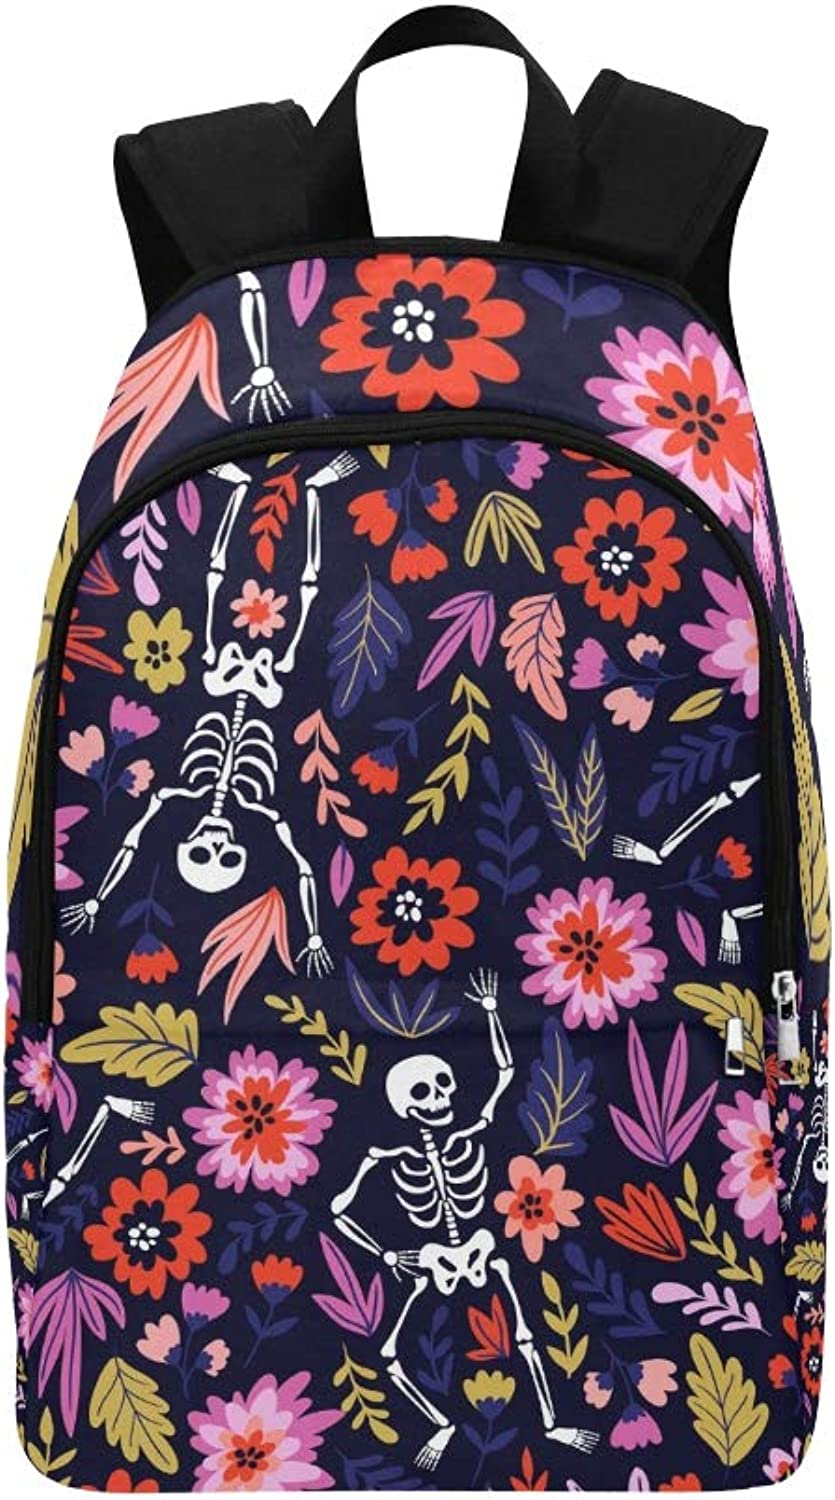 Dancing Skeletons Floral Garden Holiday Casual Daypack Travel Bag College School Backpack for Mens and Women